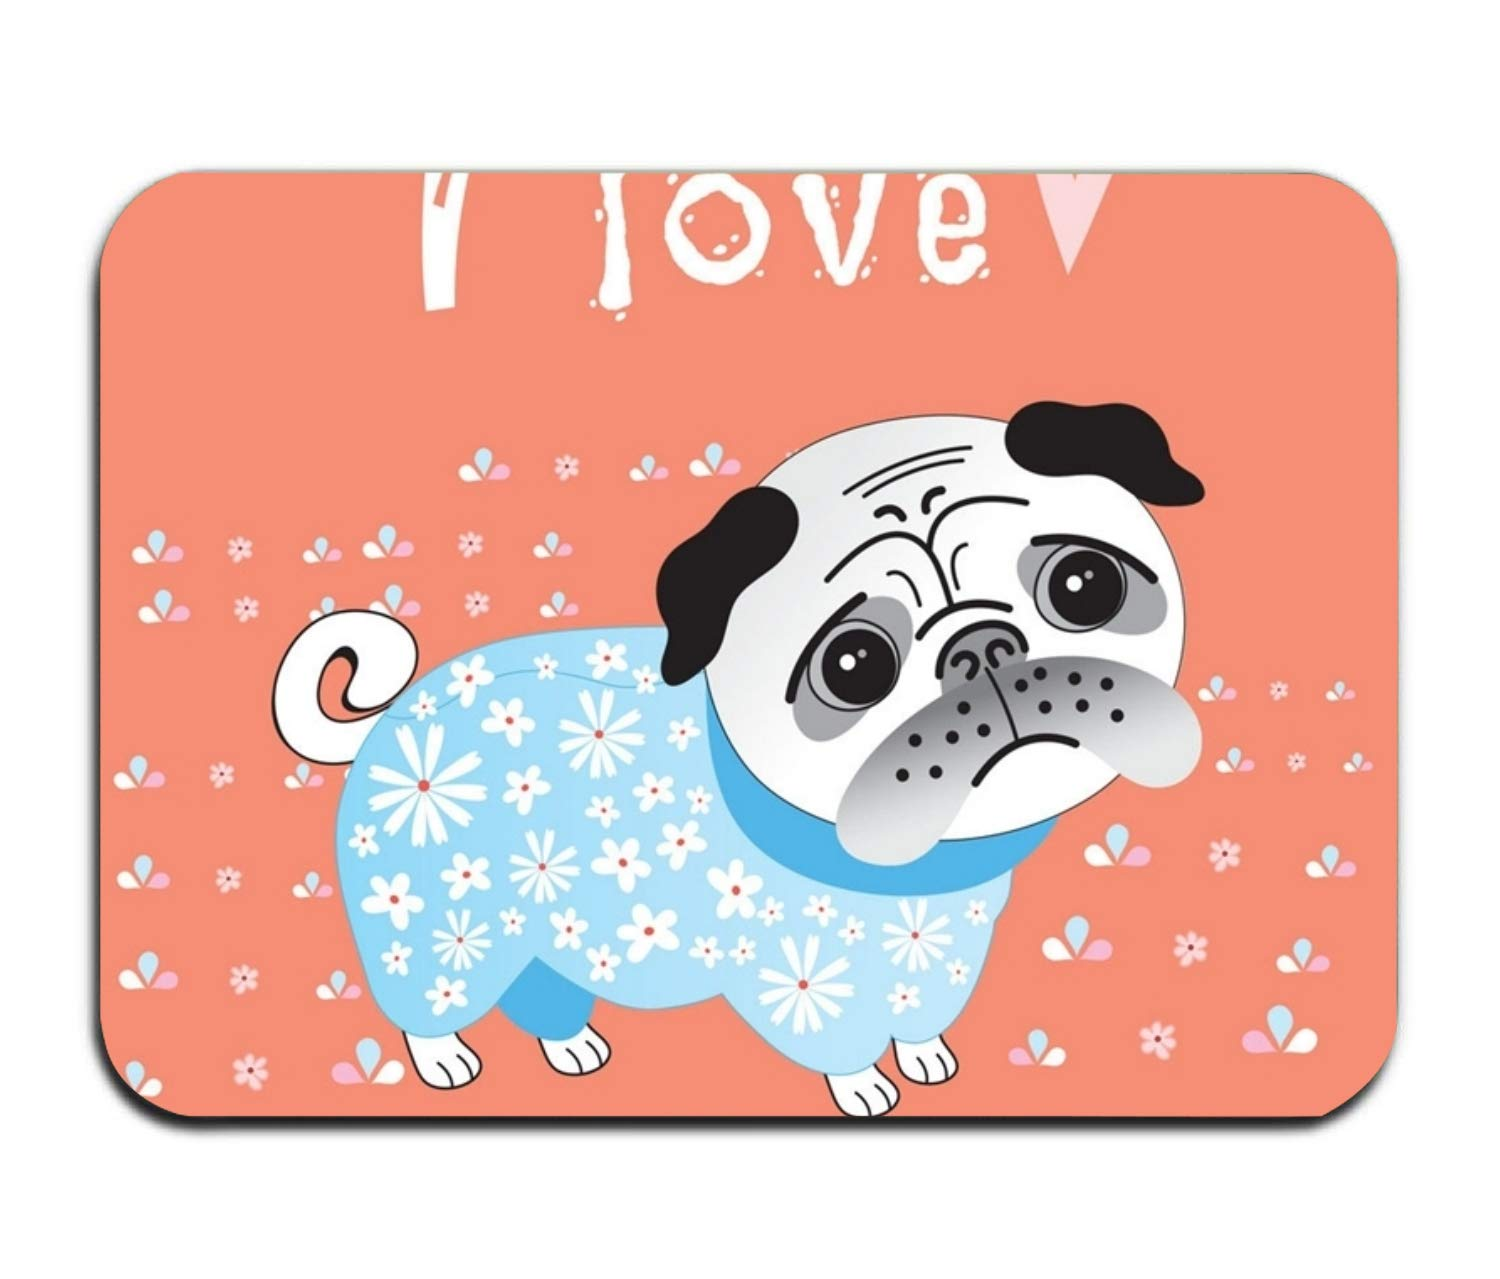 yyoungsell Cotton I Love Pug Entrance Rug 16''x 24'' Shoes Scraper Machine Washable Carpet Brownish Tan by yyoungsell (Image #1)